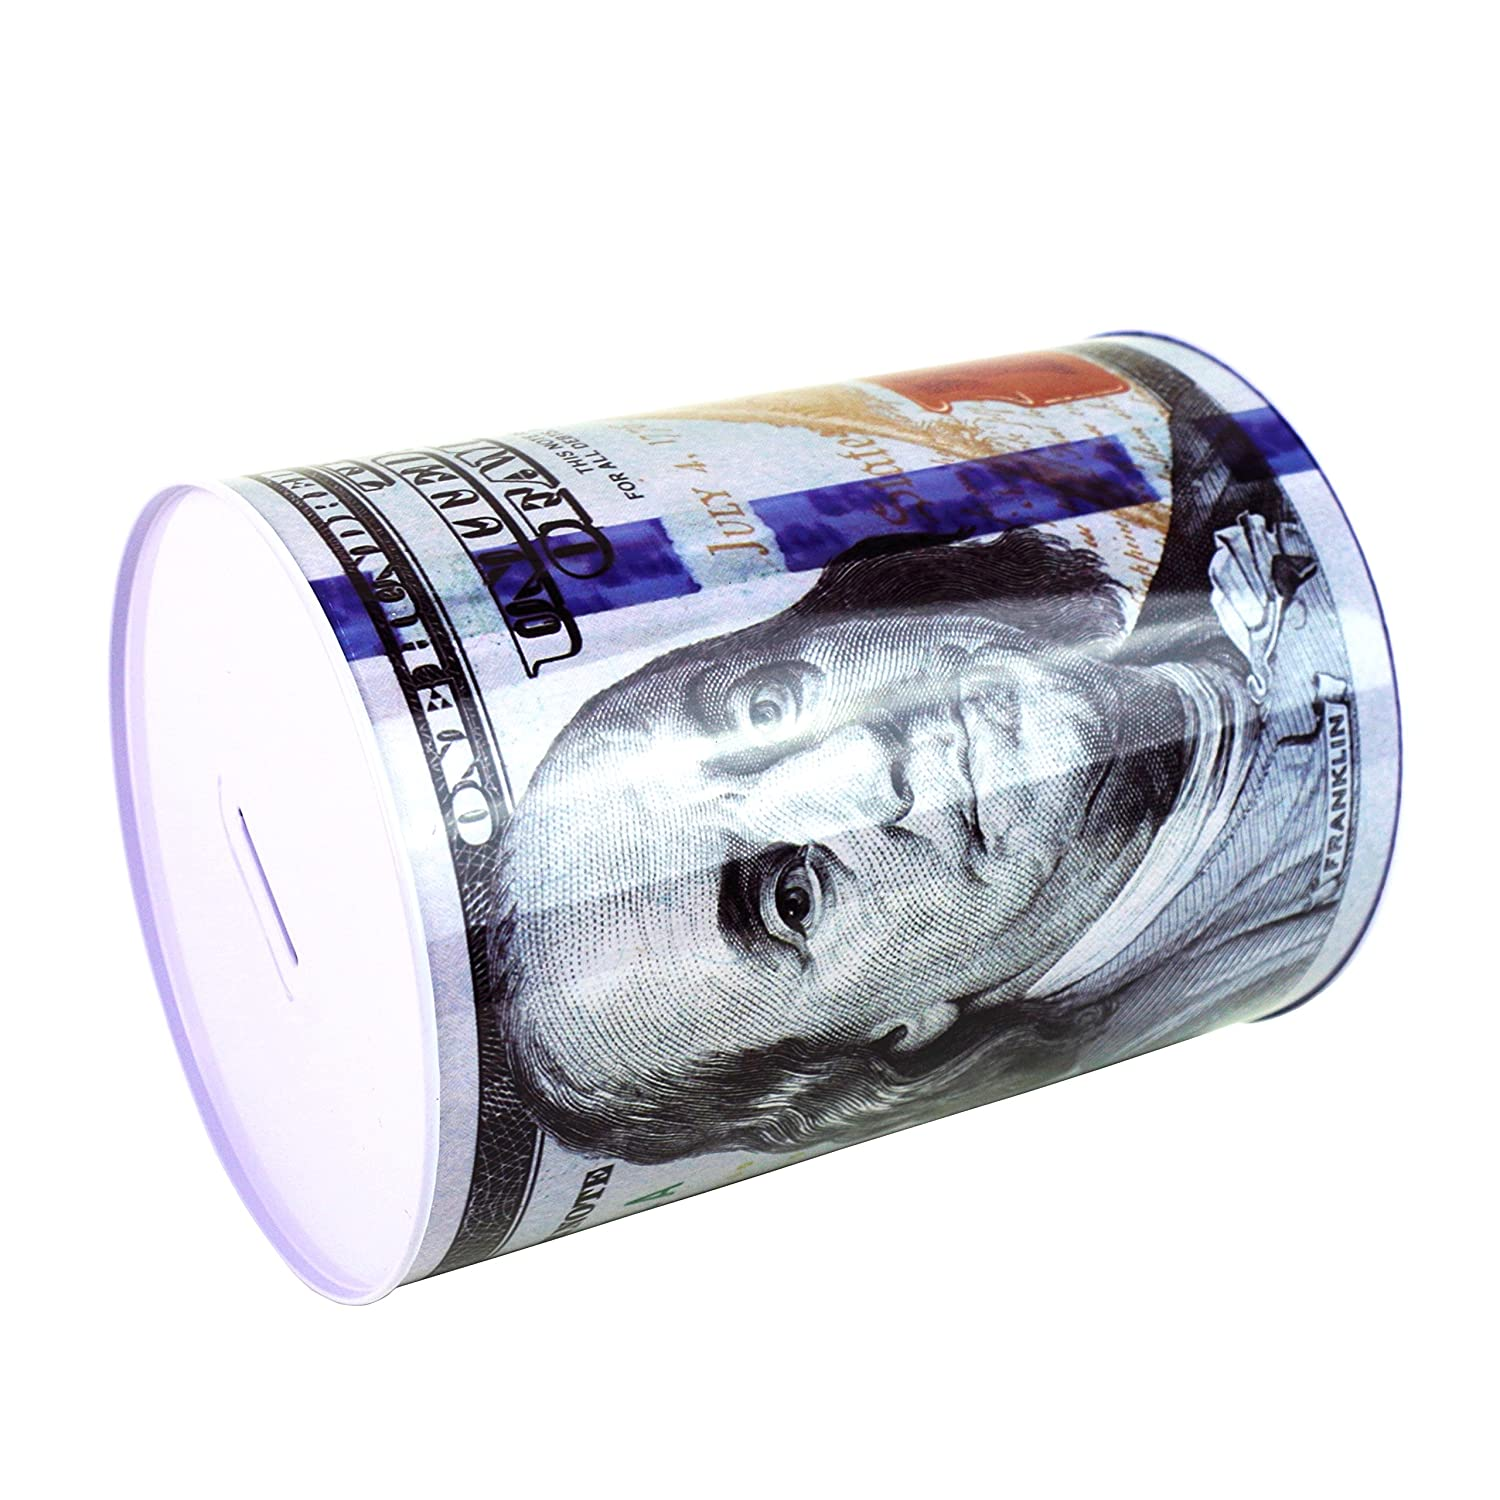 $100 Dollar Bill Piggy Bank 8.5 Tall Coin Saving Money Currency Benjamin Franklin C Note Tin Can Banknote Jar by Spreezie